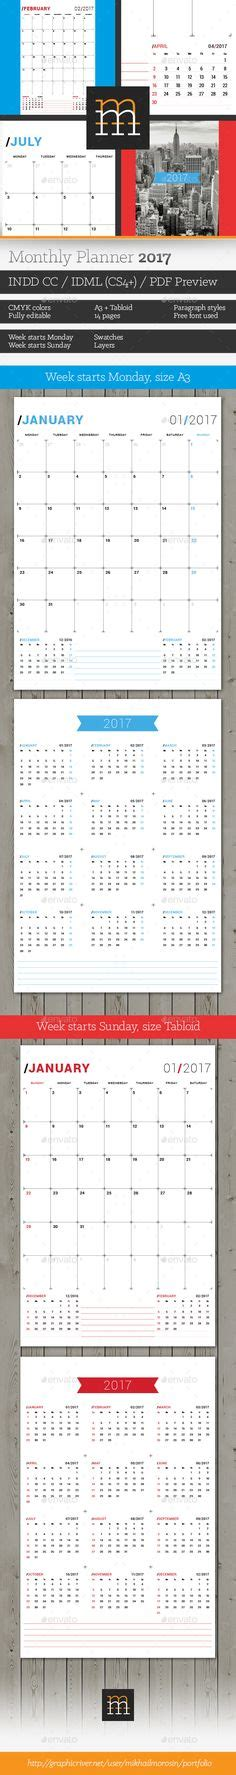 1000 images about calendar templates on pinterest desk